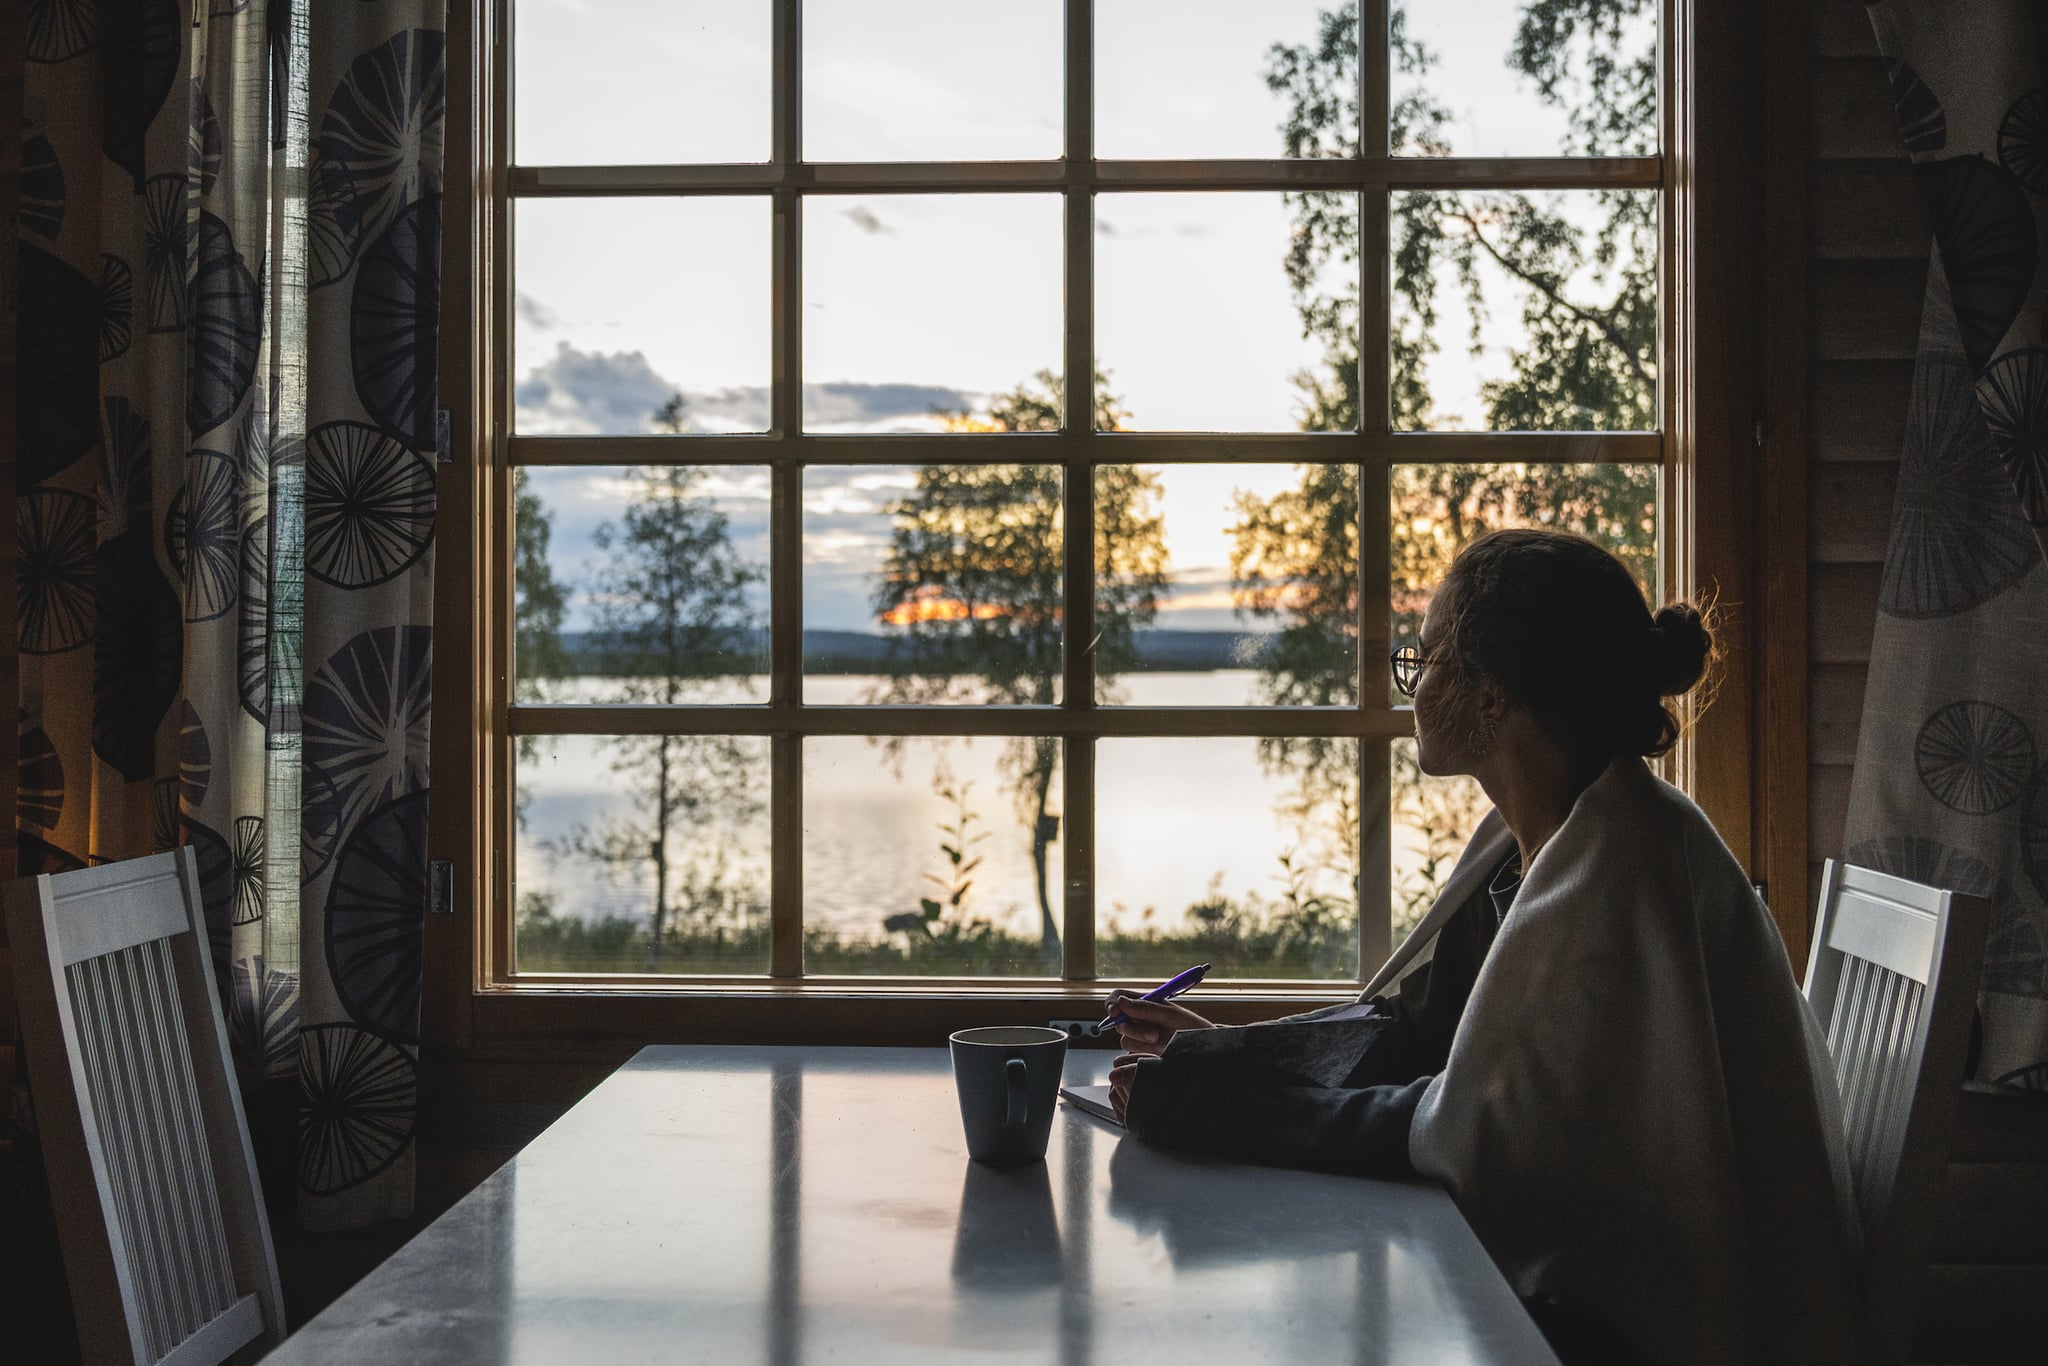 Finland, Lapland, young woman sitting at the window looking at a lake